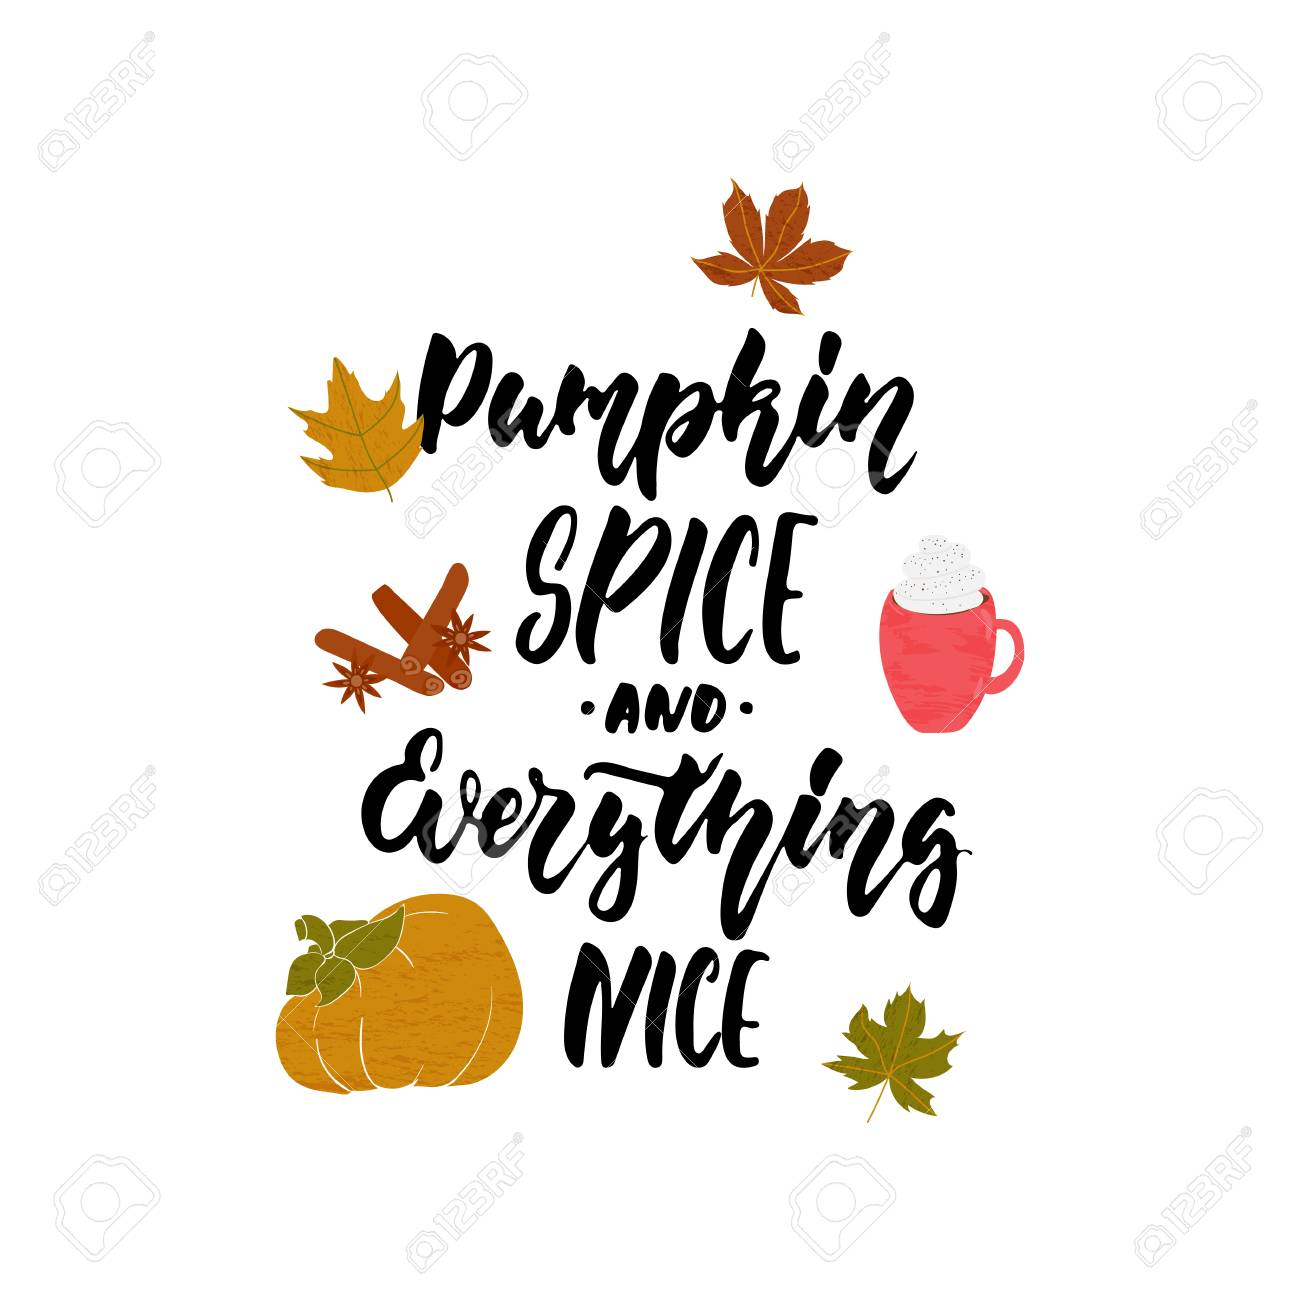 Pumpkin spice and everything nice - hand drawn cozy Autumn seasons holiday lettering phrase and Hugge doodles leaves, latte cup, pumpkin, cinnamon and star anise. Fun brush vector illustration design - 105224840